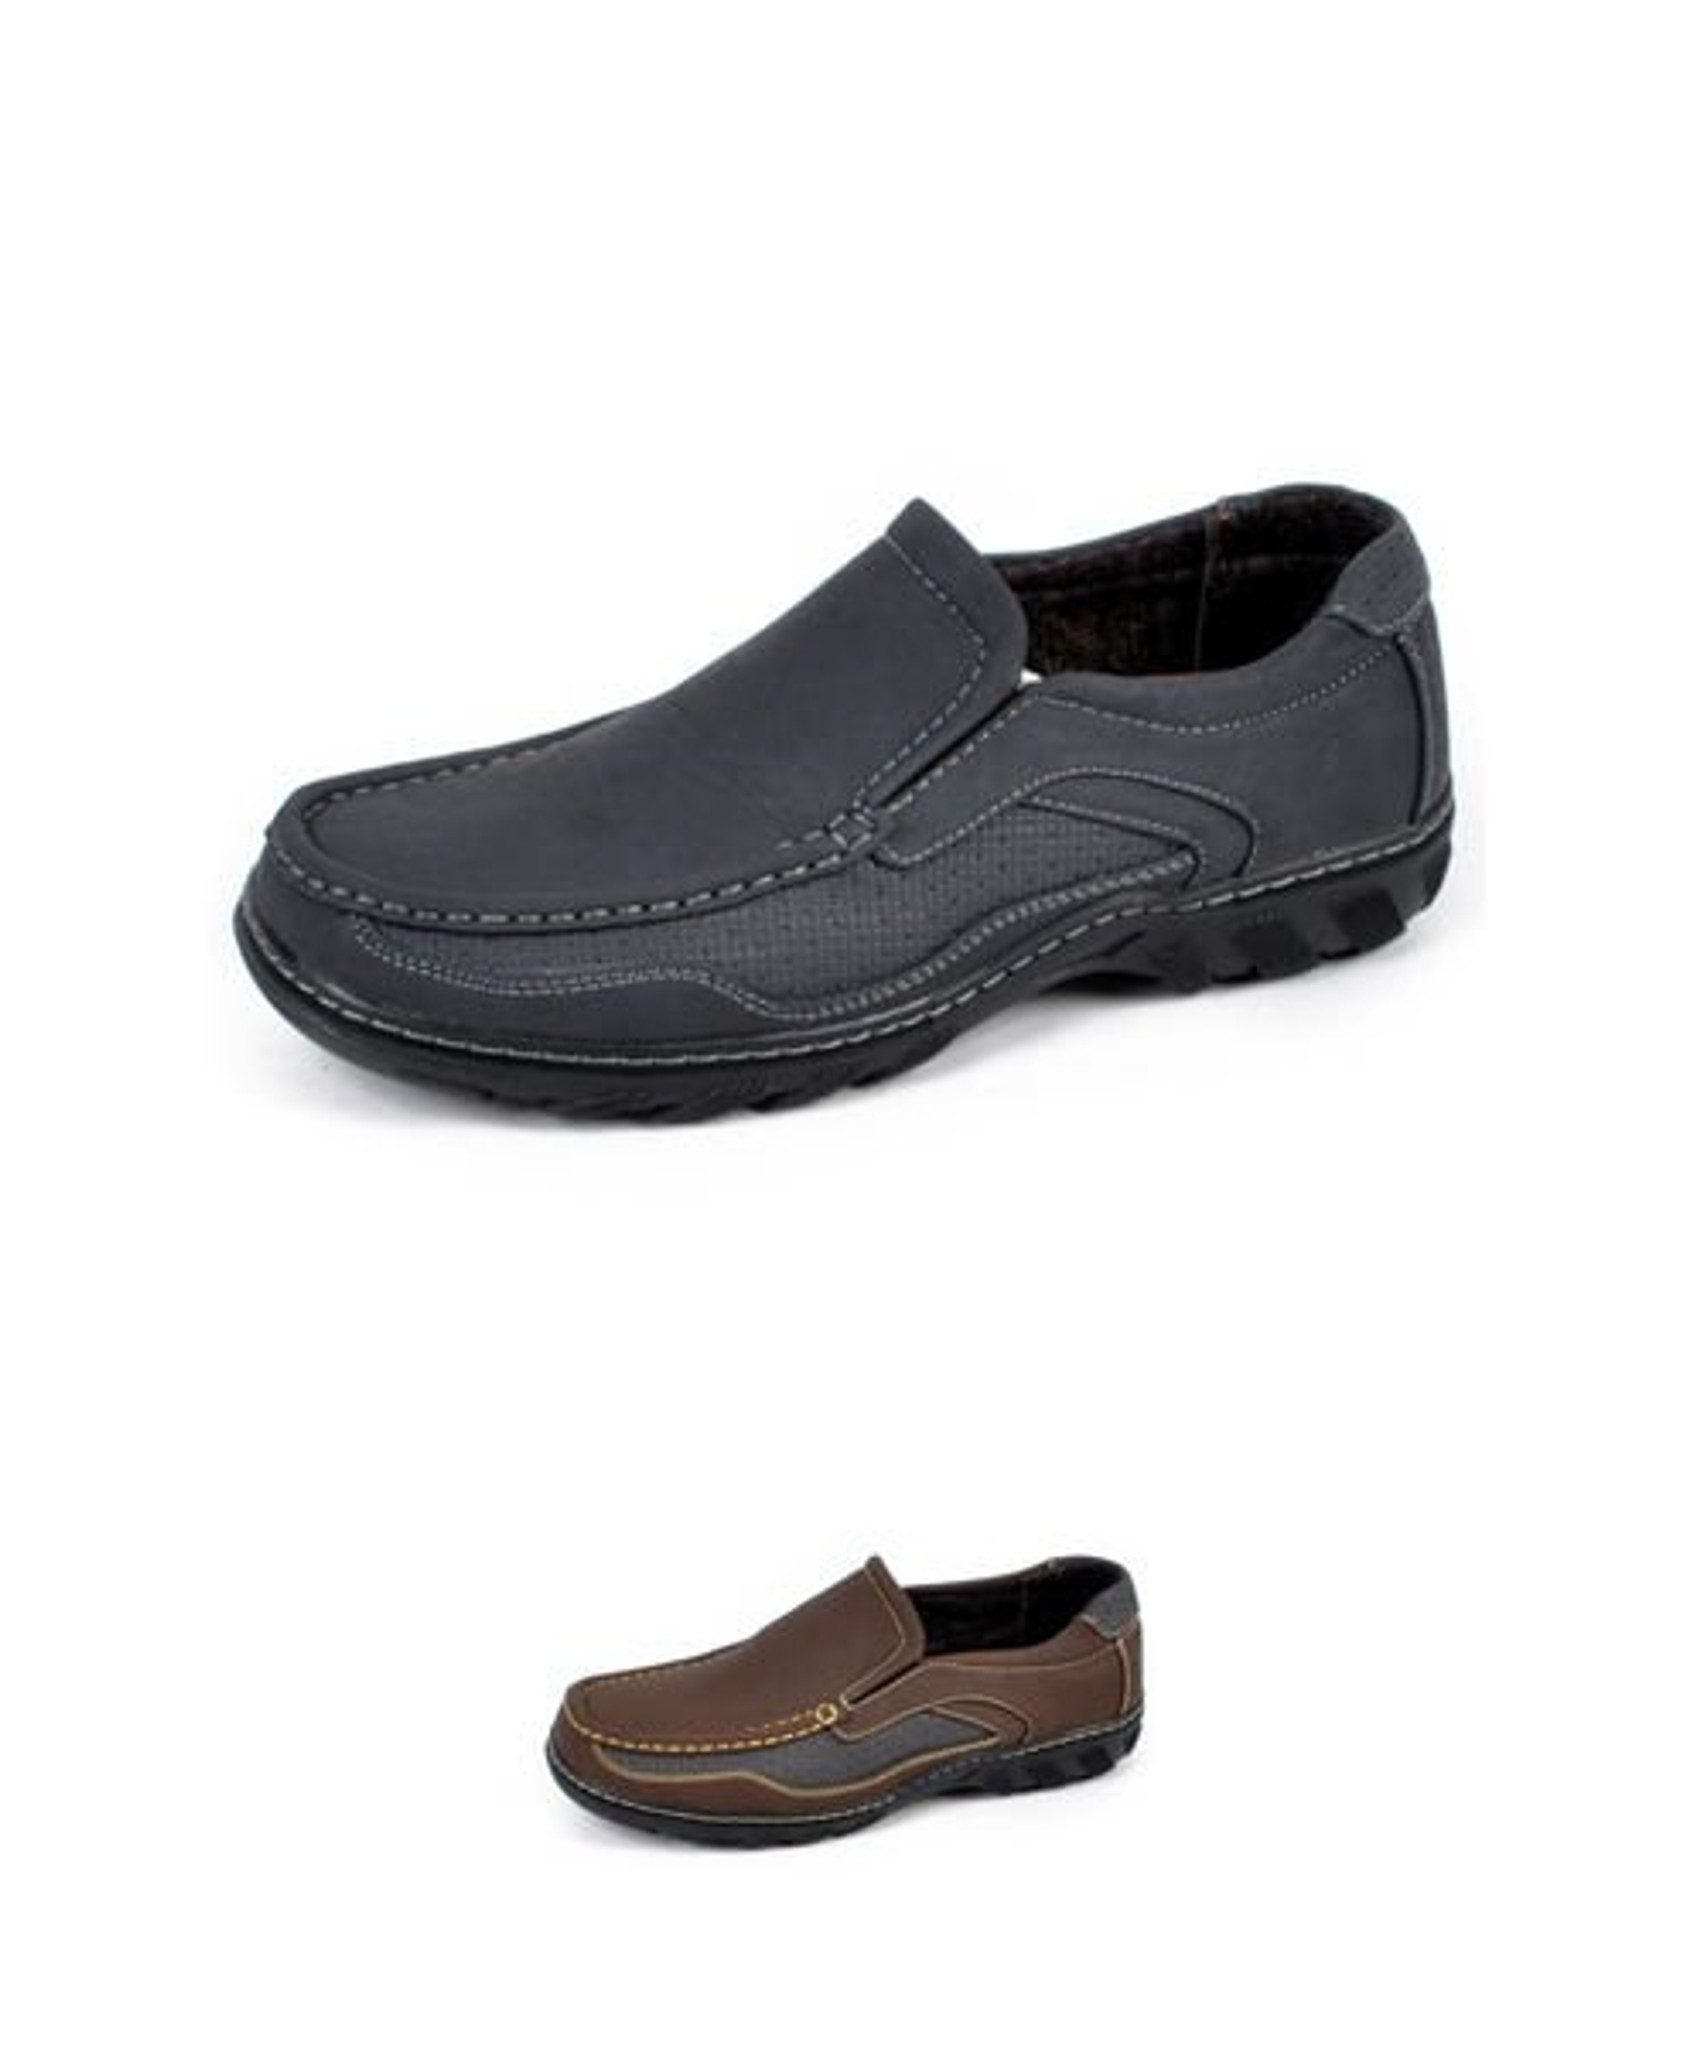 Men's Cool and Casual Loafers Slip On